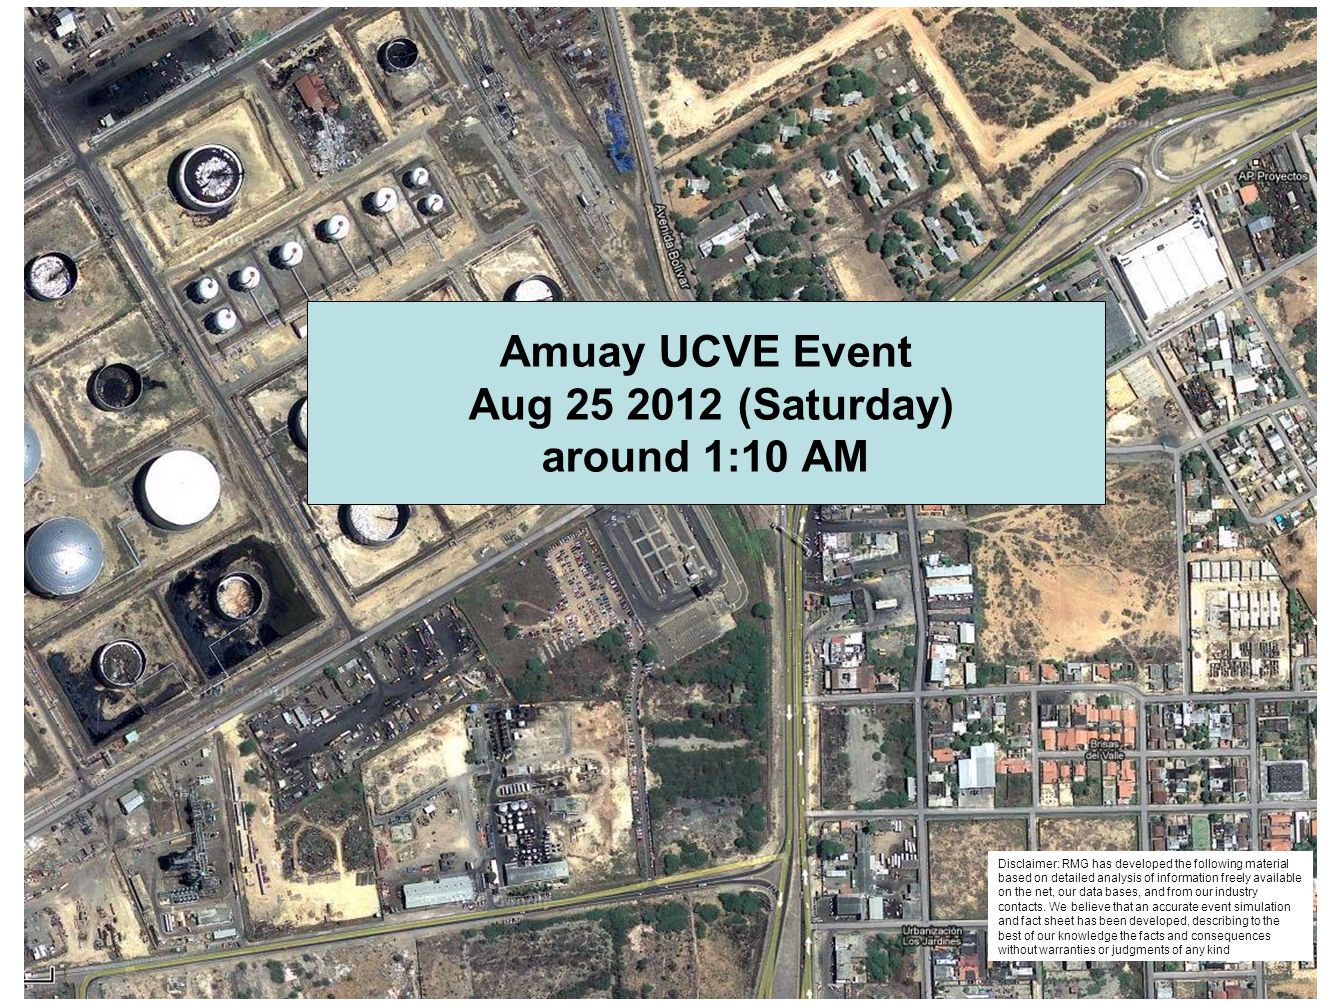 Amuay UCVE Event Aug 25 2012 (Saturday) around 1:10 AM